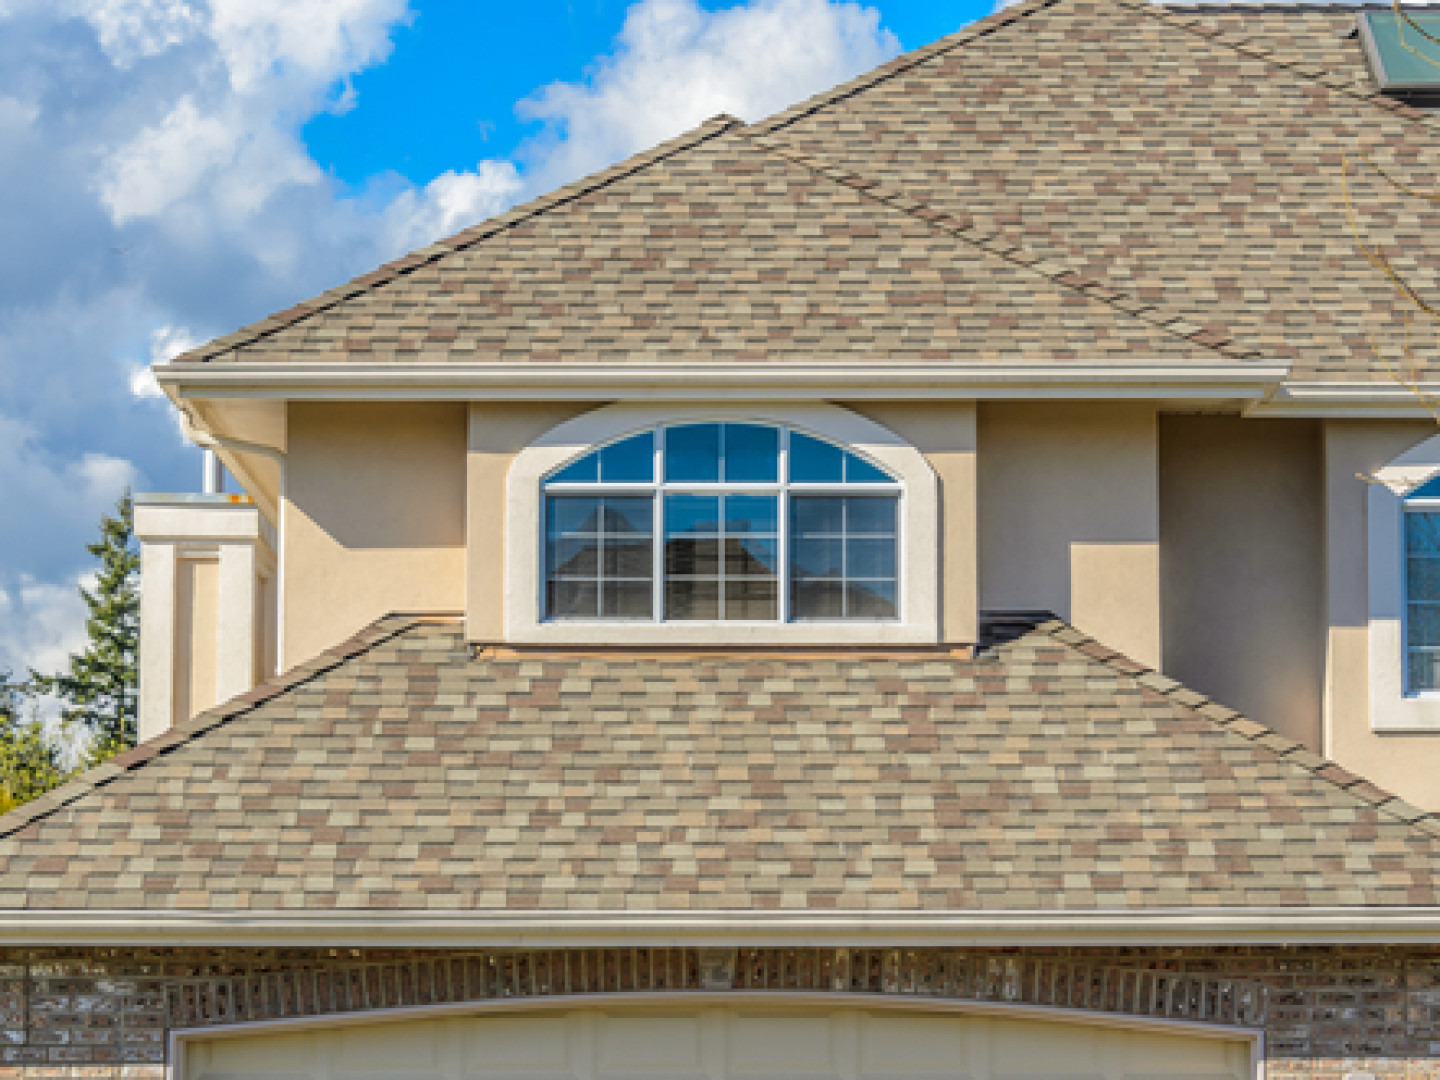 In Need of a New Roof in the Katy, Sugar Land, Houston, TX or Lake Charles, LA Area?